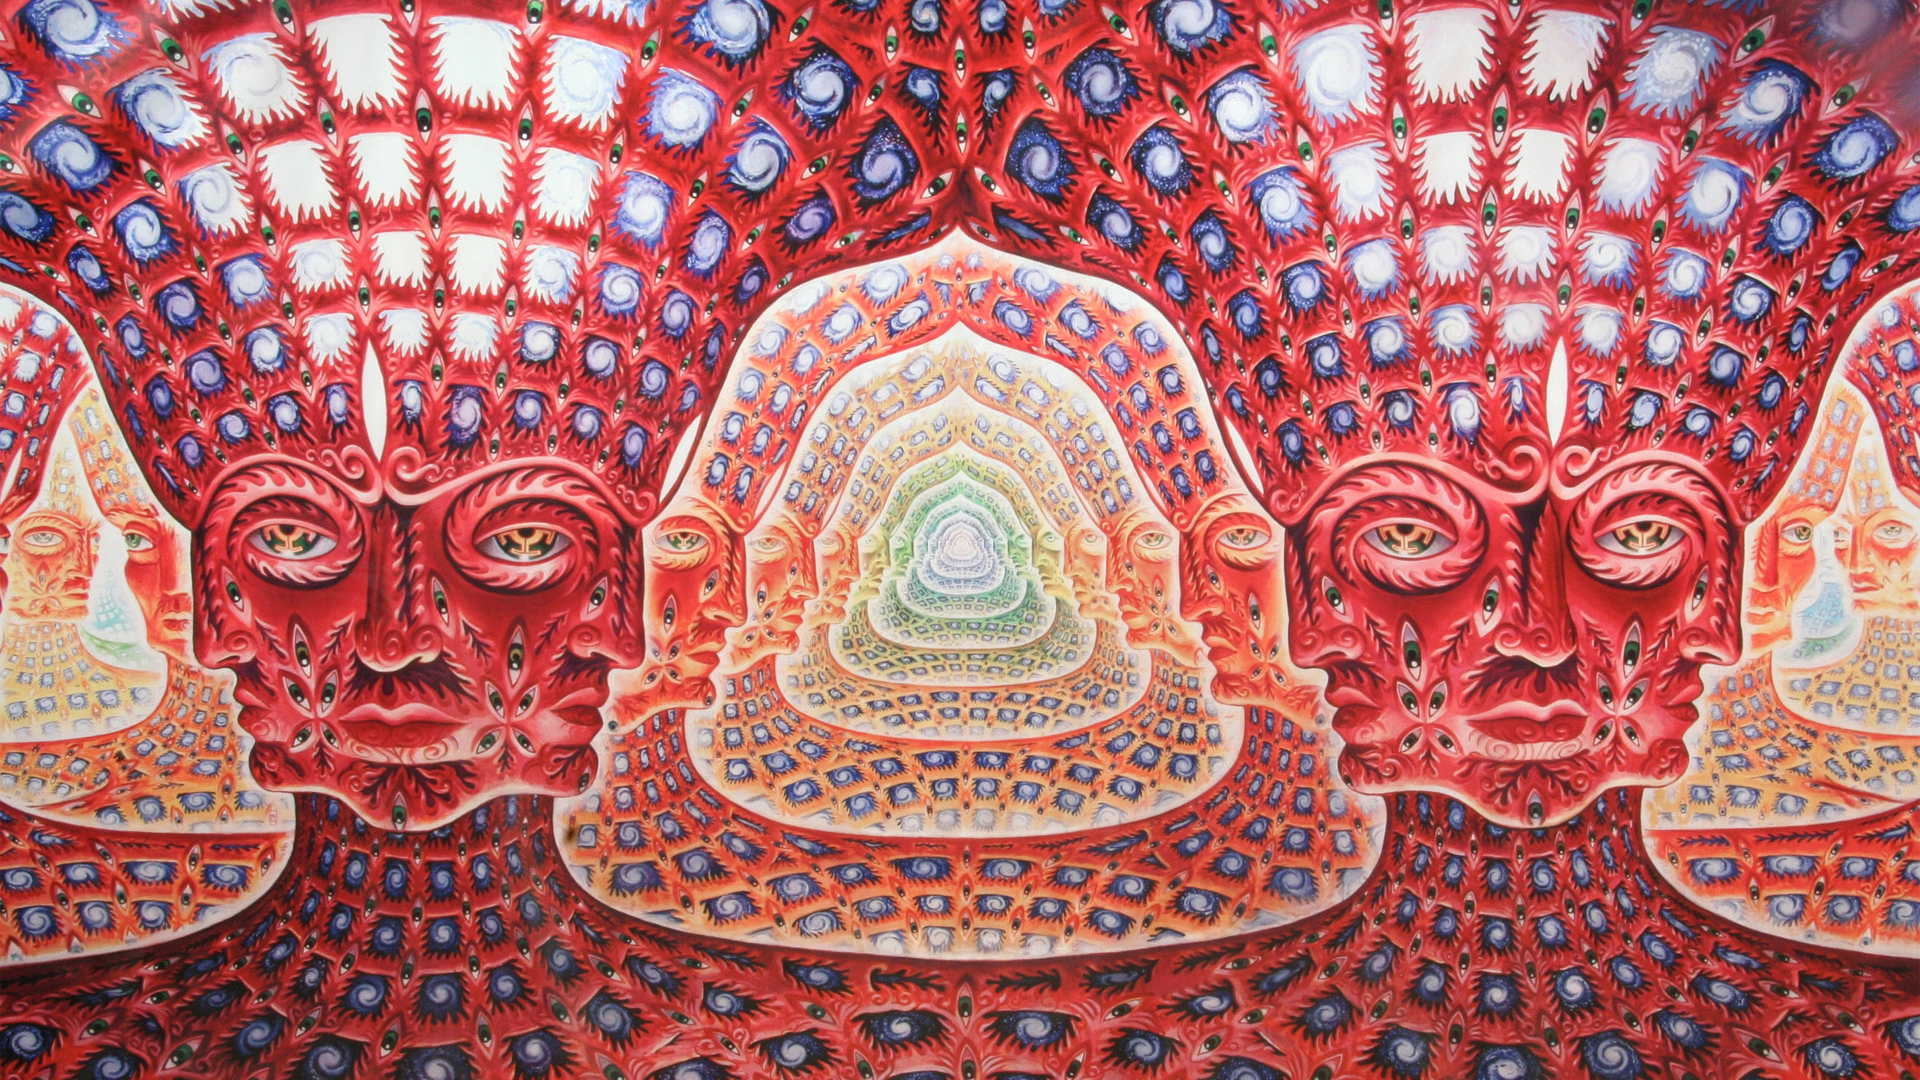 Psychedelic Wallpaper 1920x1080 Psychedelic 1920x1080